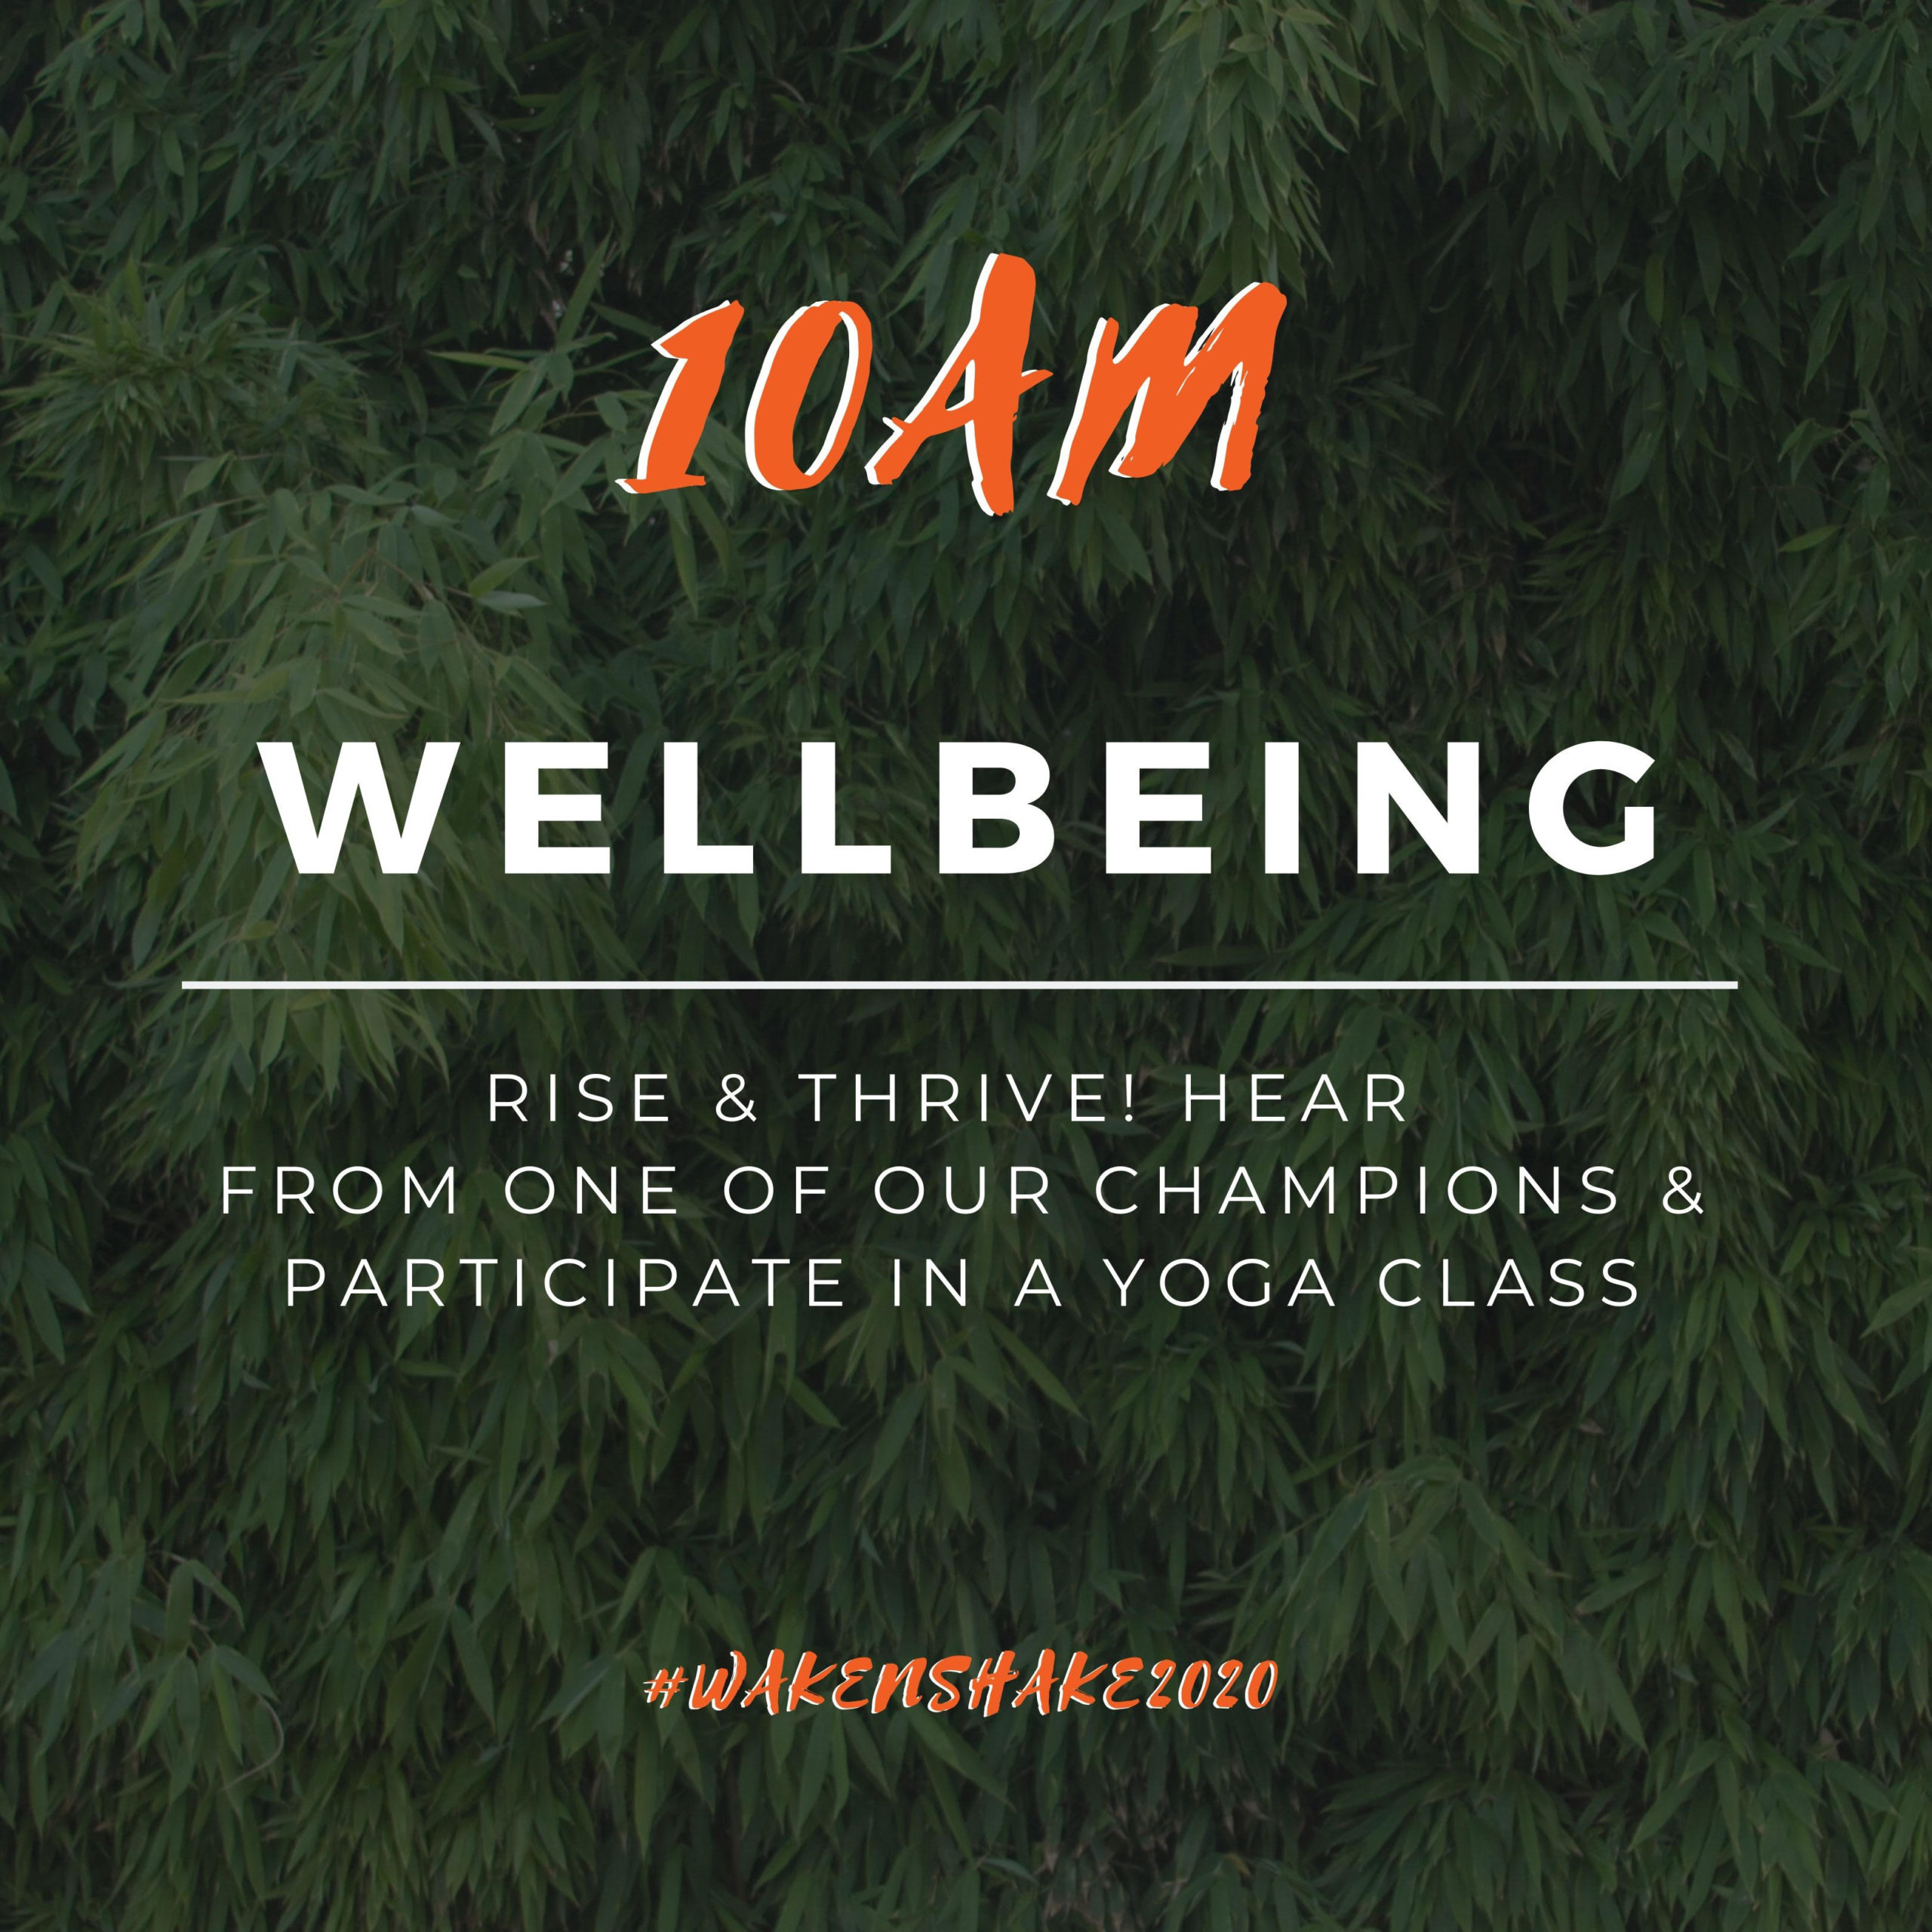 10 am-wellbeing hour